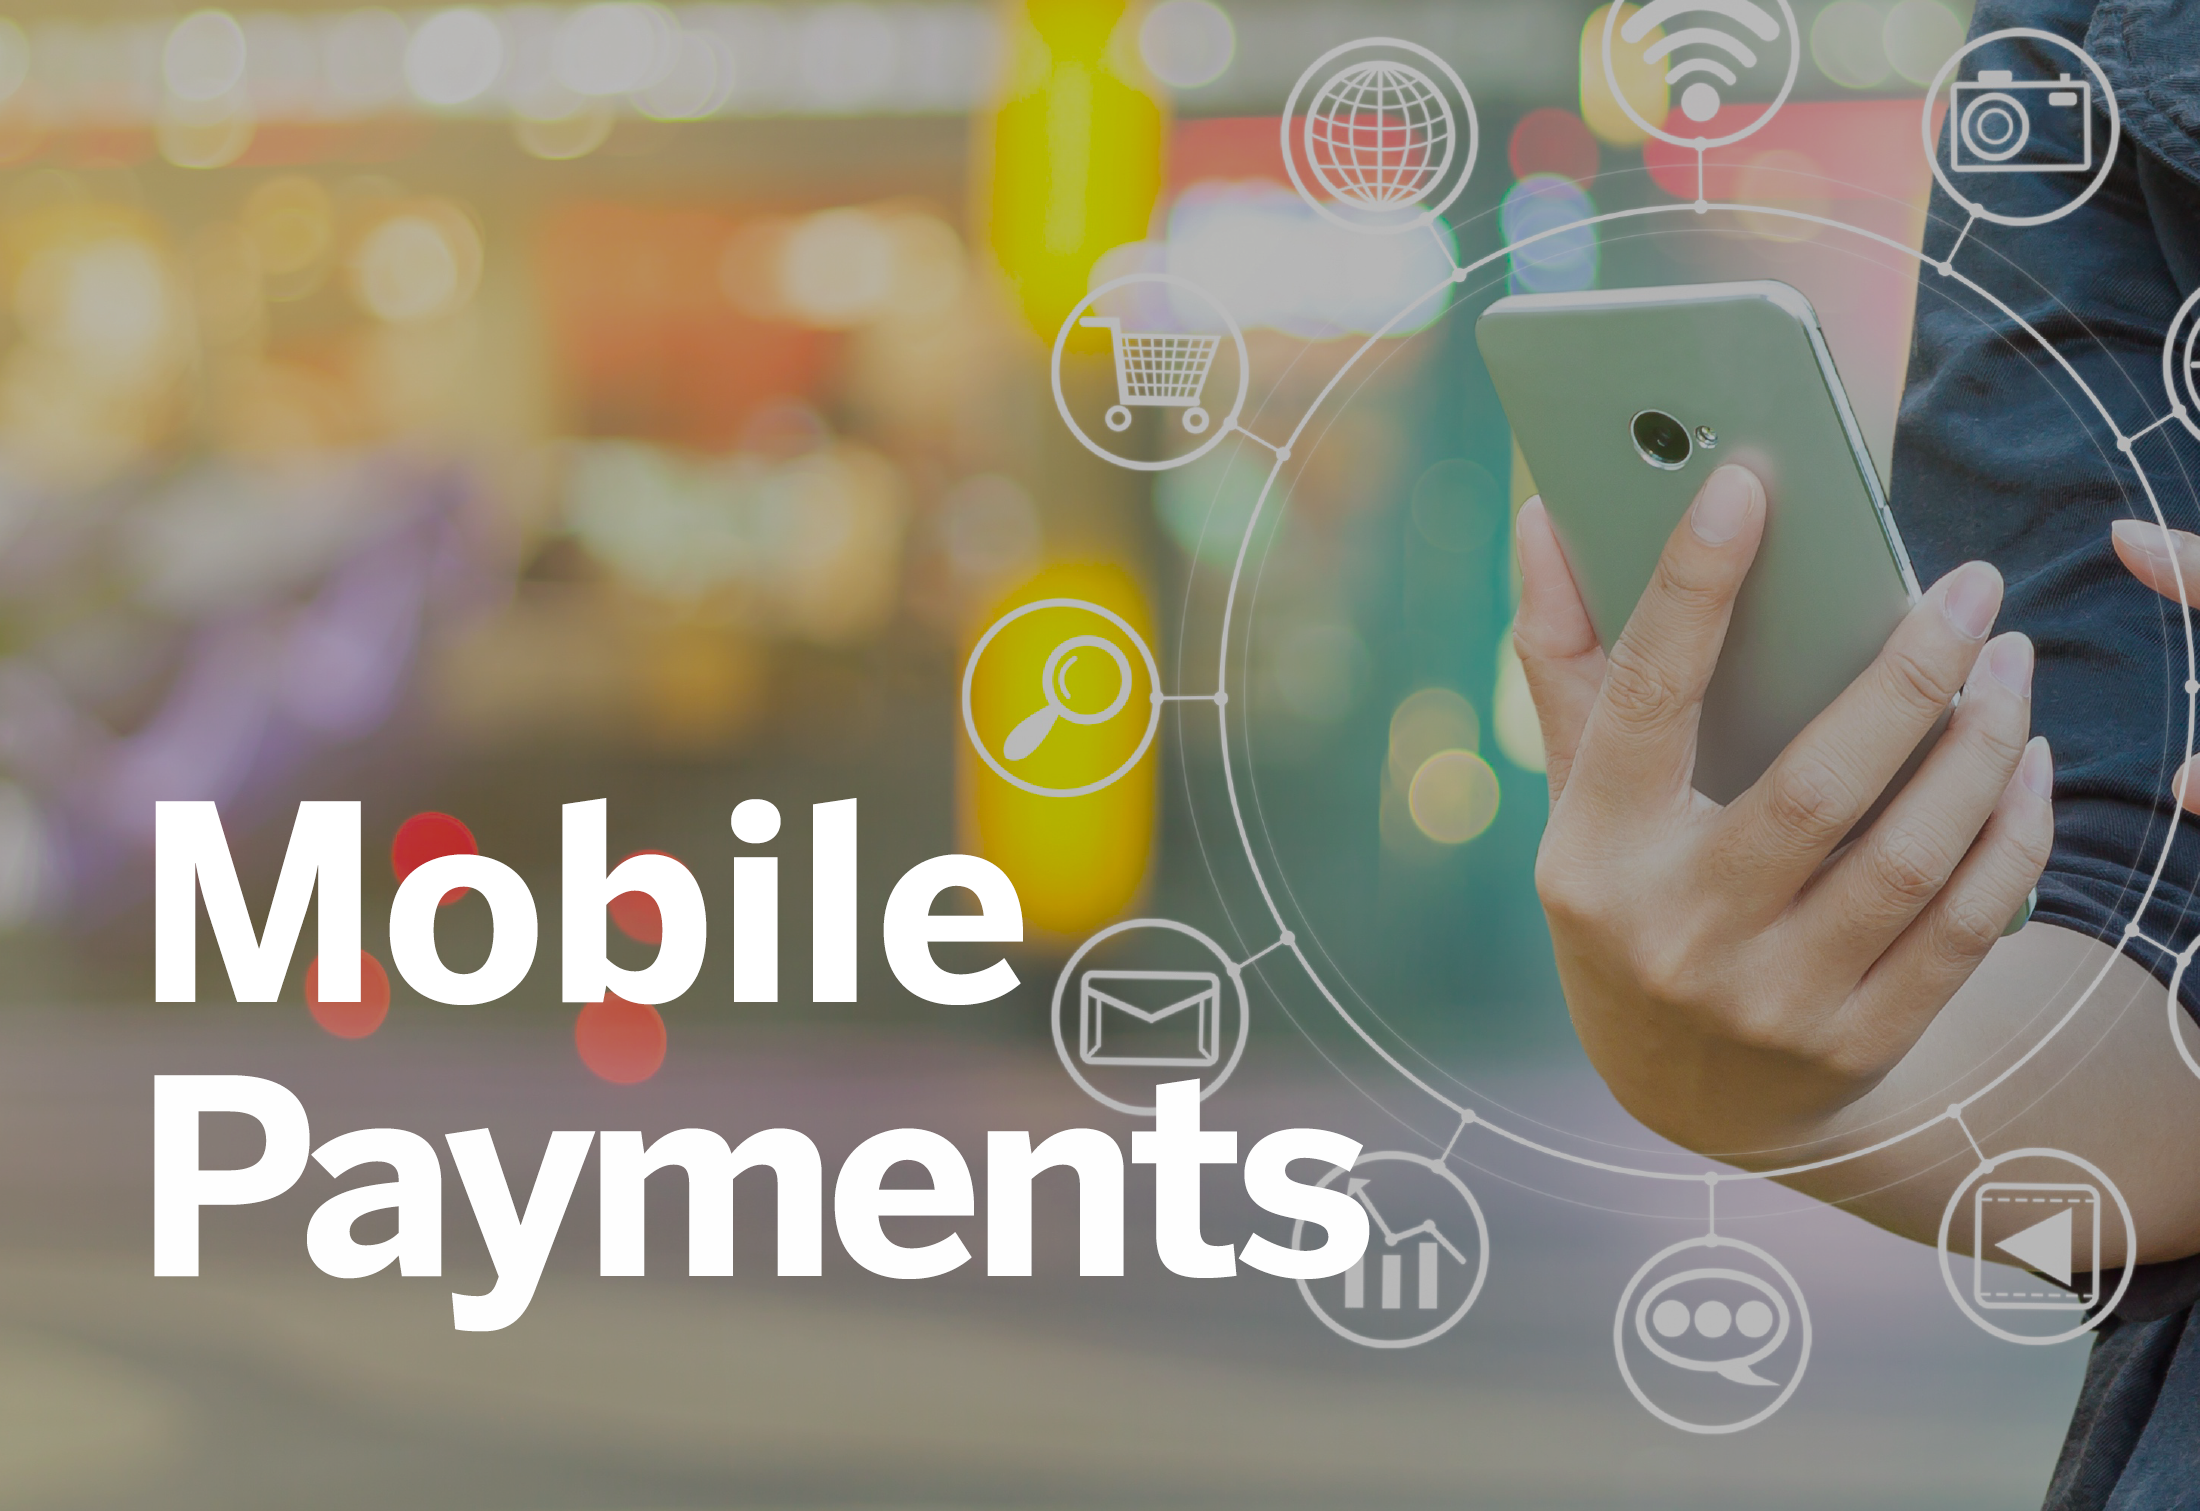 The boom in mobile payments